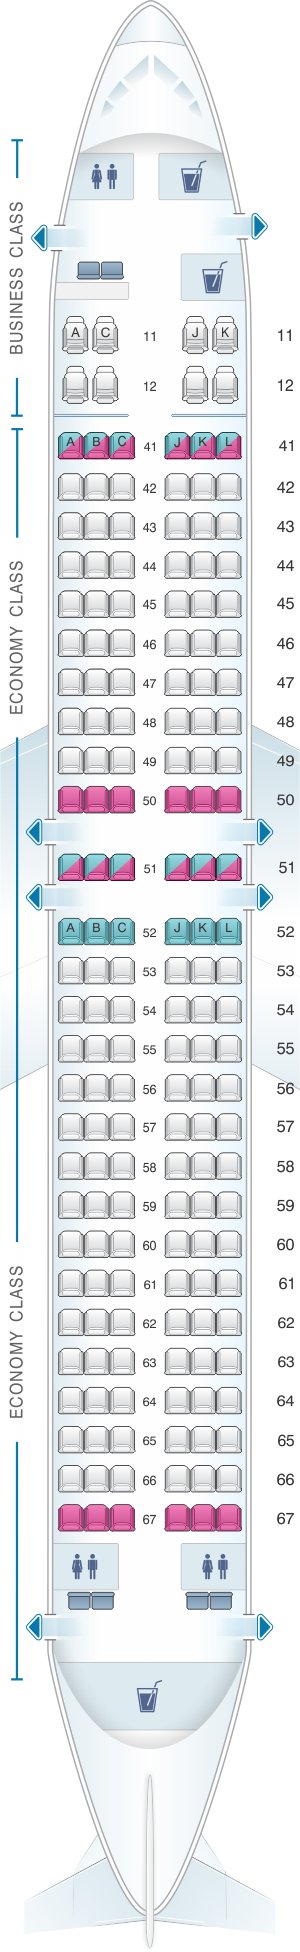 Seat map for Xiamen Airlines Boeing B737 800 170pax